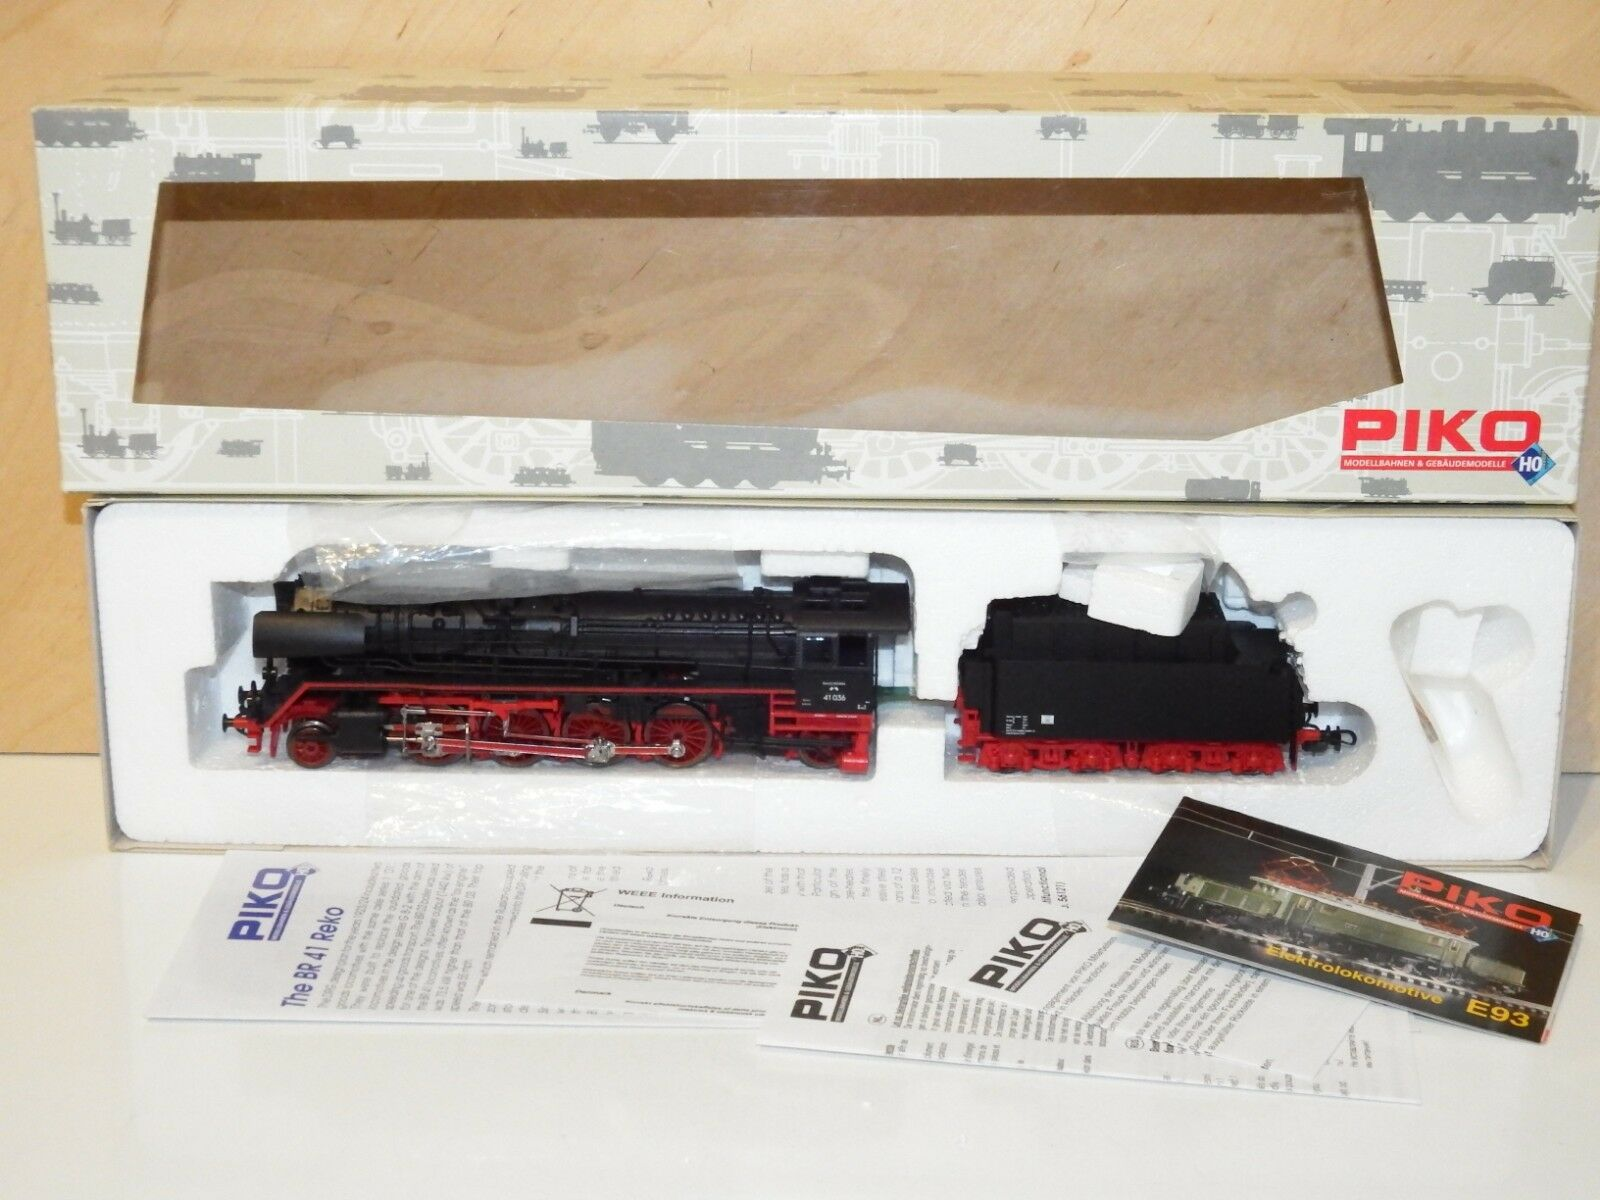 H0 PIKO 50028 DSS locomotiva BR 41 036 DR OVP come nuovo 8937